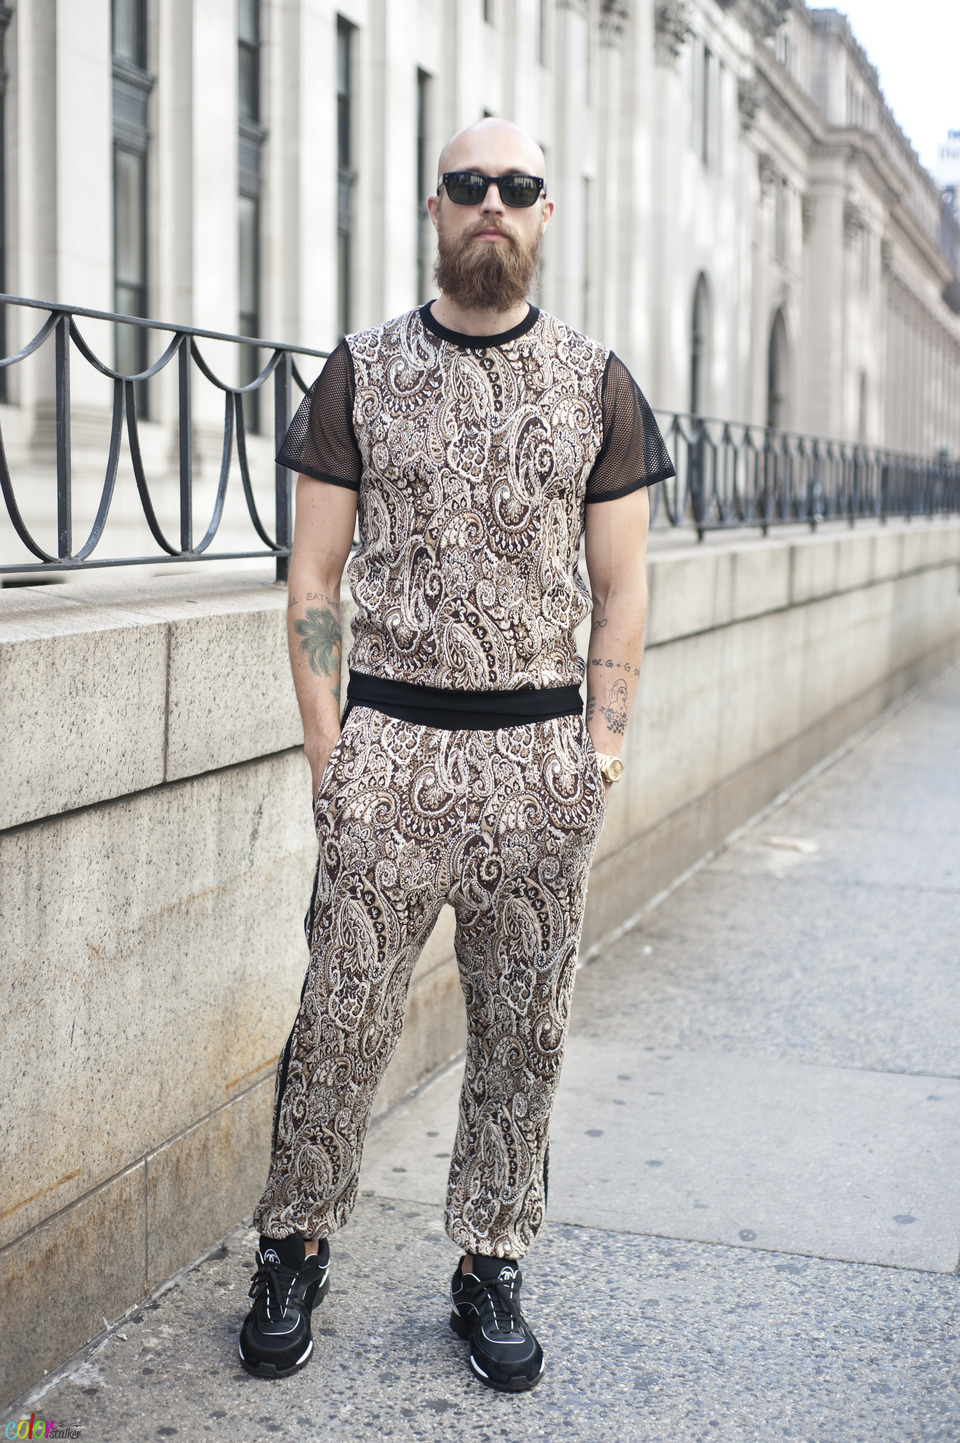 There are alternatives to tracksuits! Keep it monochromatic or go wild on prints, colors and textures.